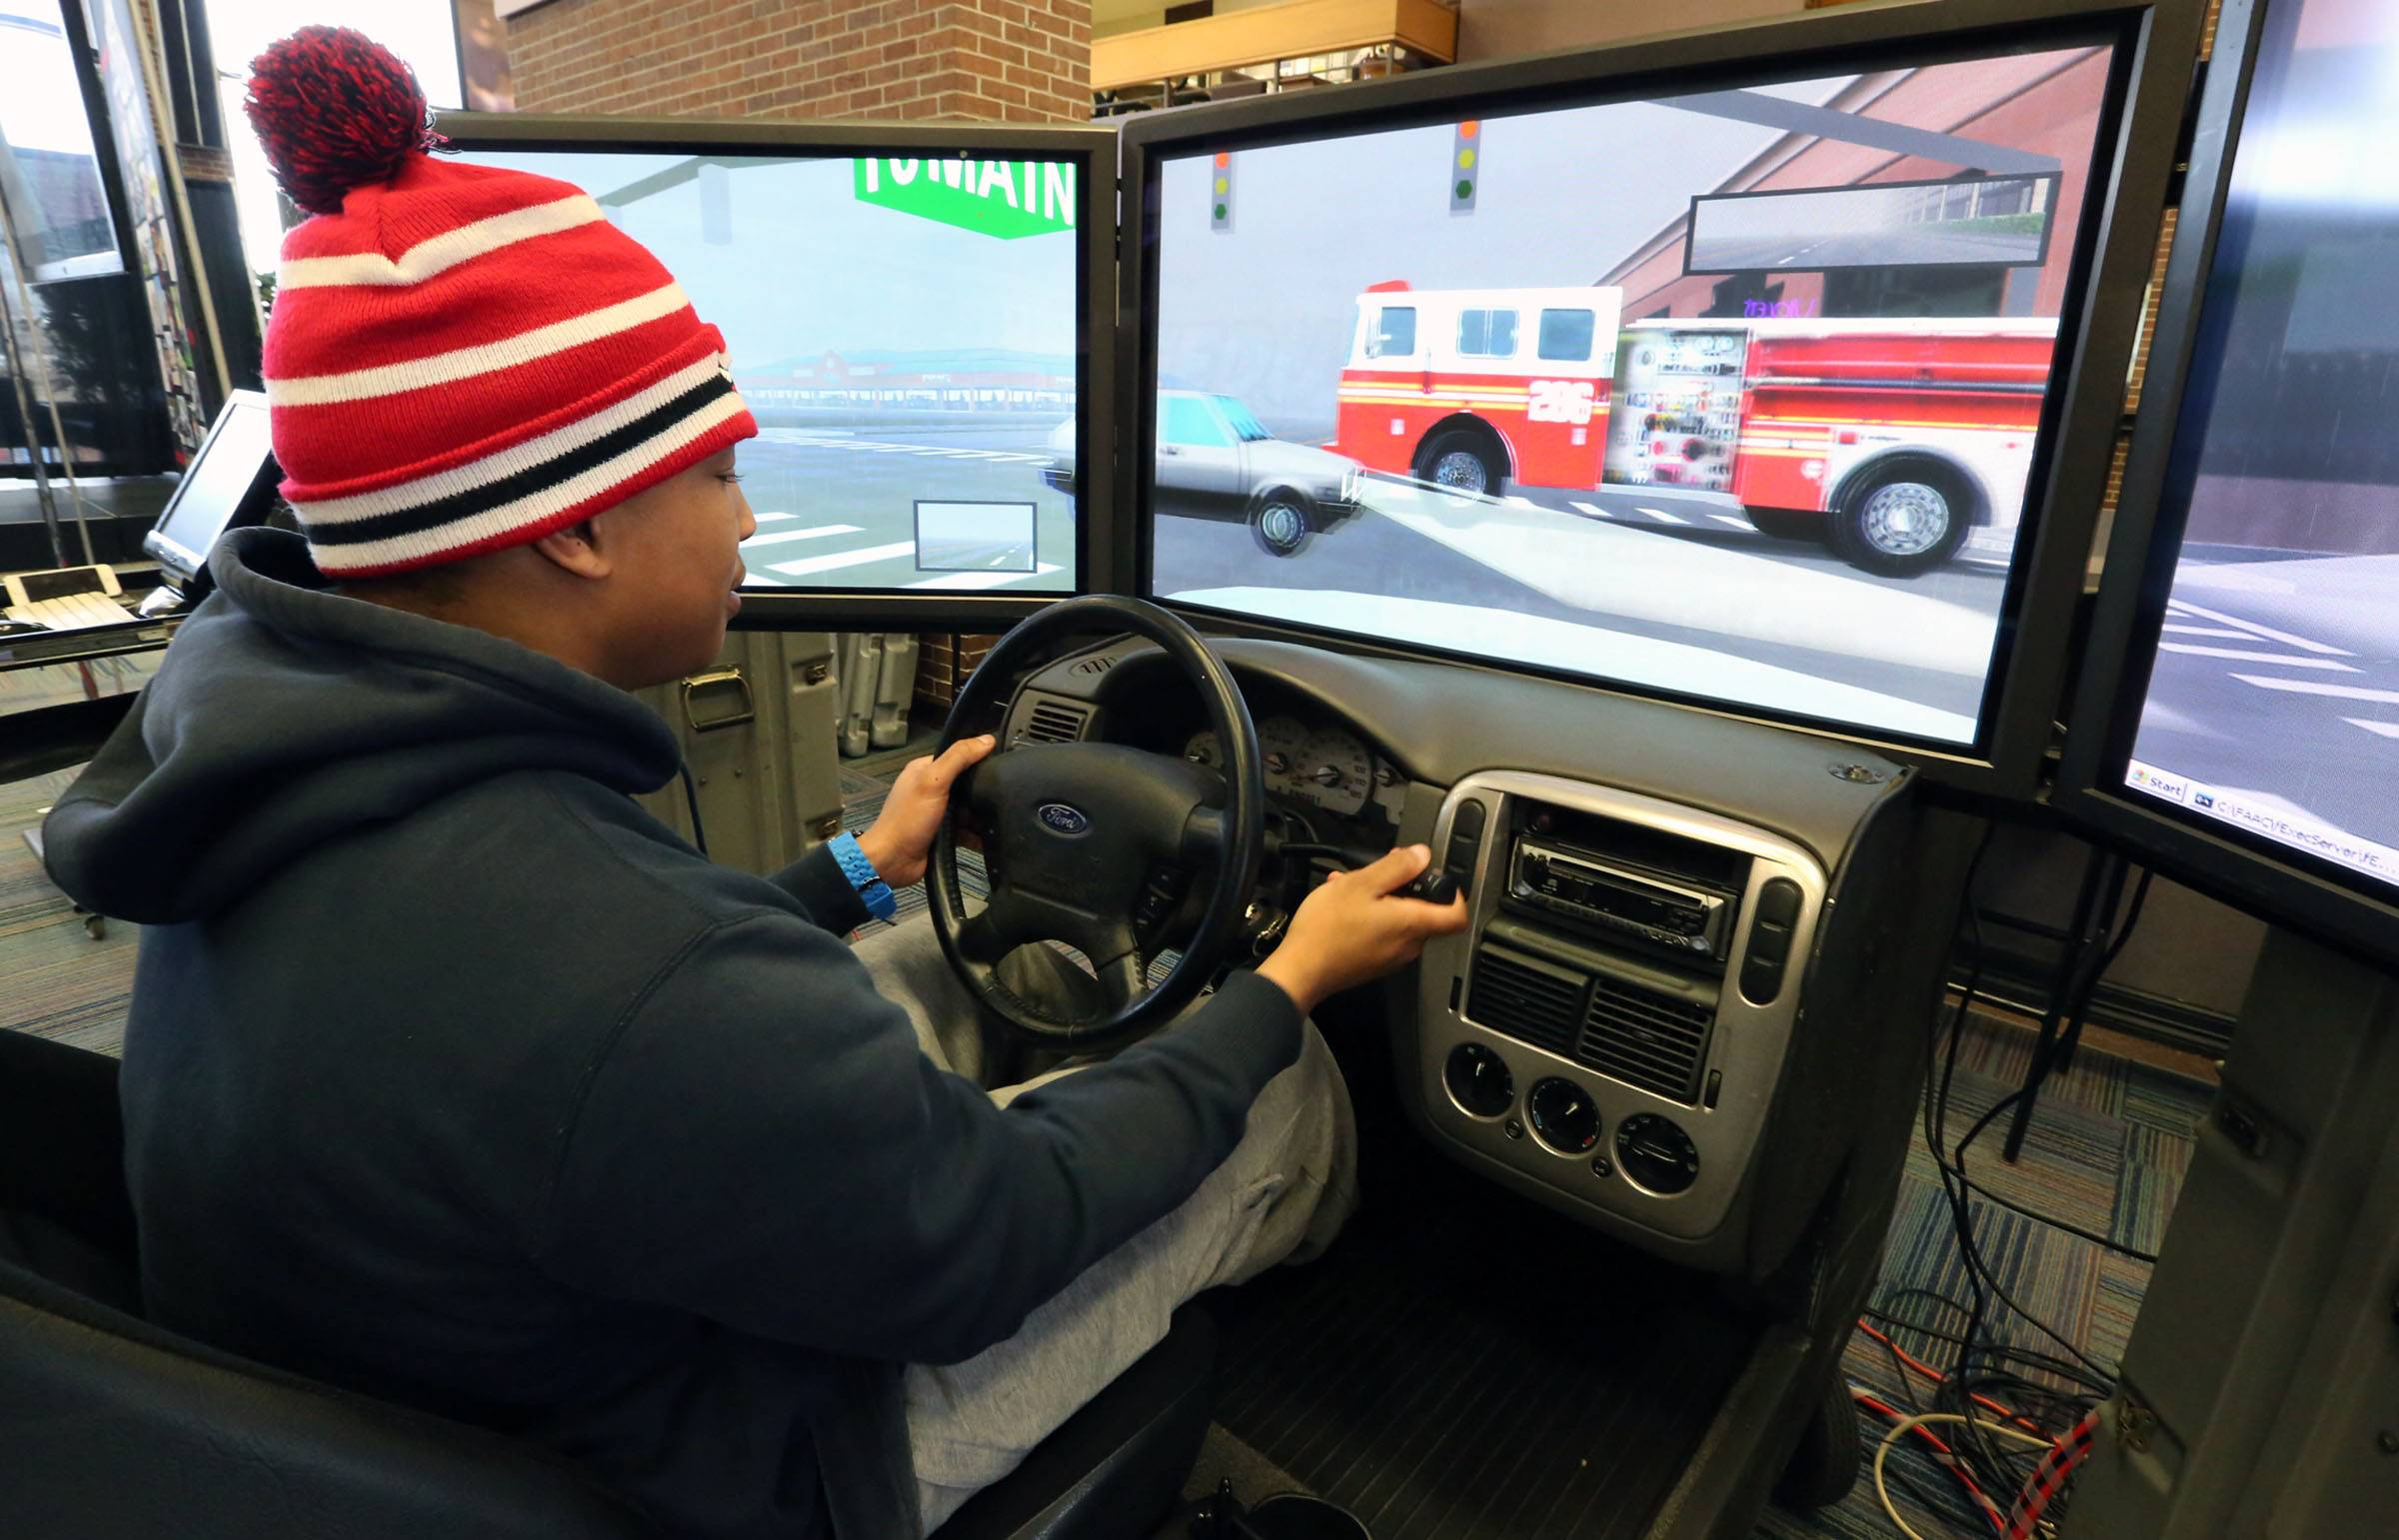 Deonte Bates, a Harper student from Palatine, tests a simulator in the student center Wednesday.